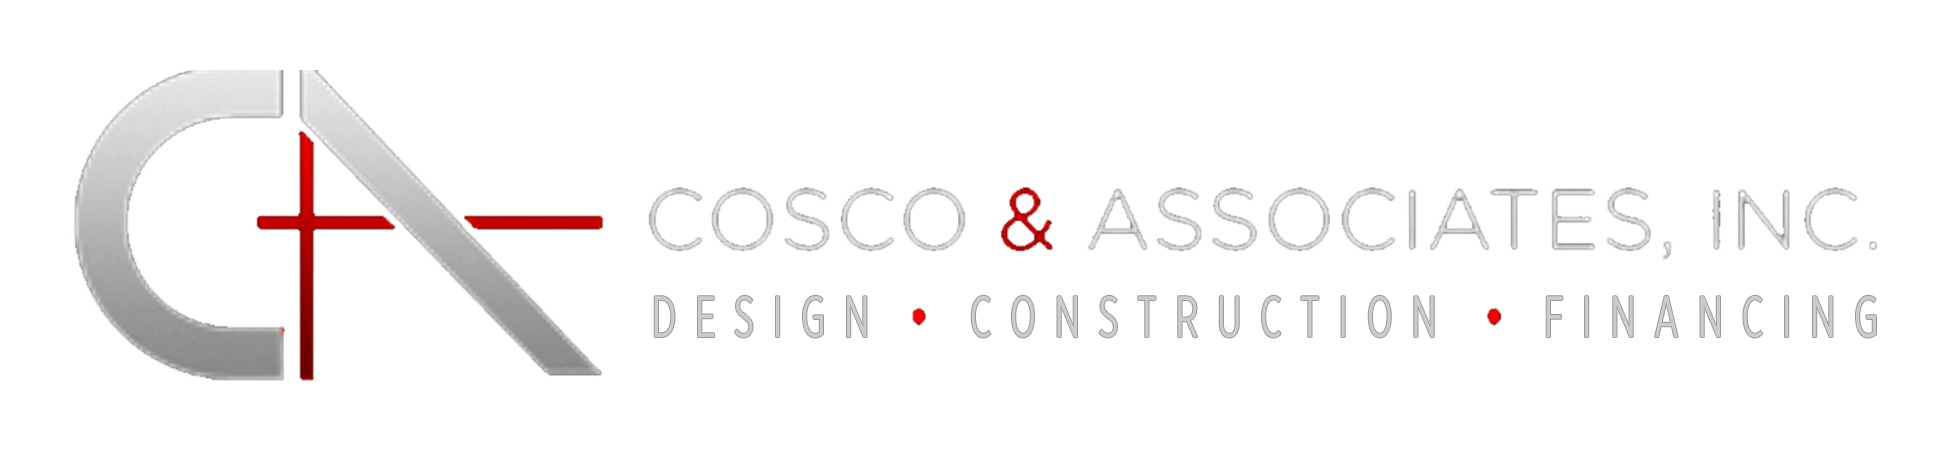 COSCO & Associates, Inc.